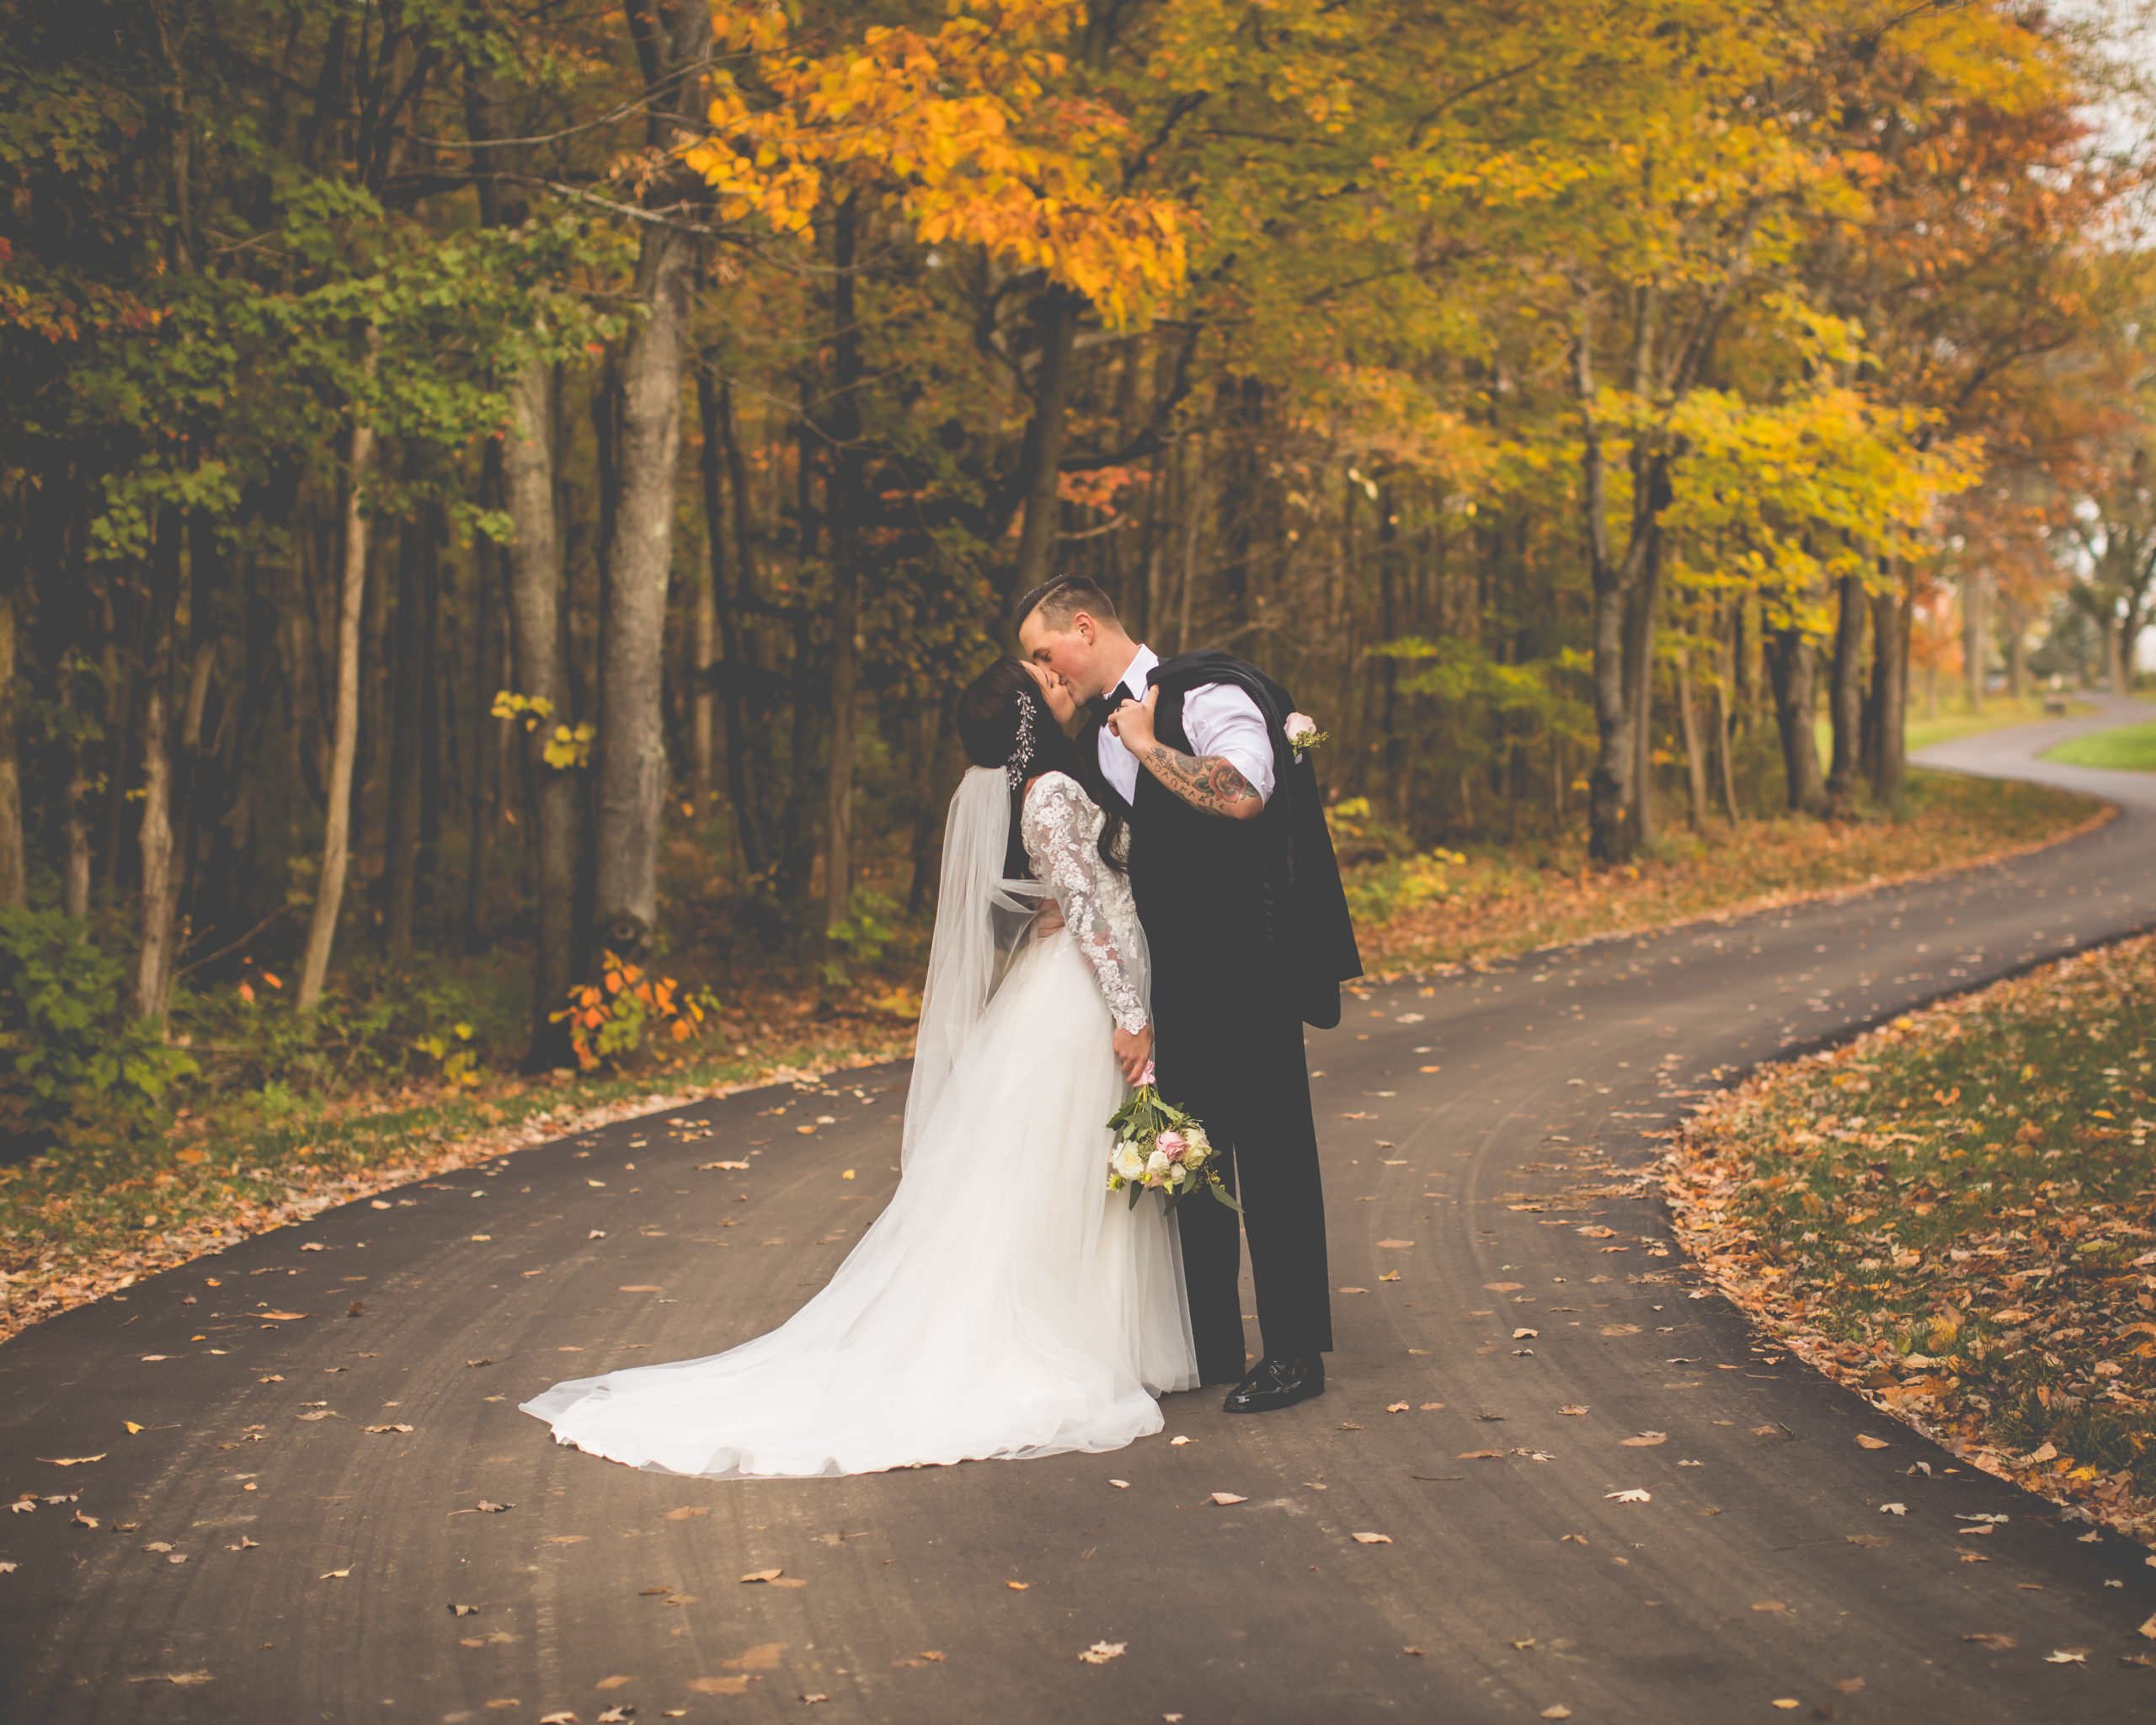 Groom & bride kissing in the middle of The Castle's curvy drive surrounded by fall foliage